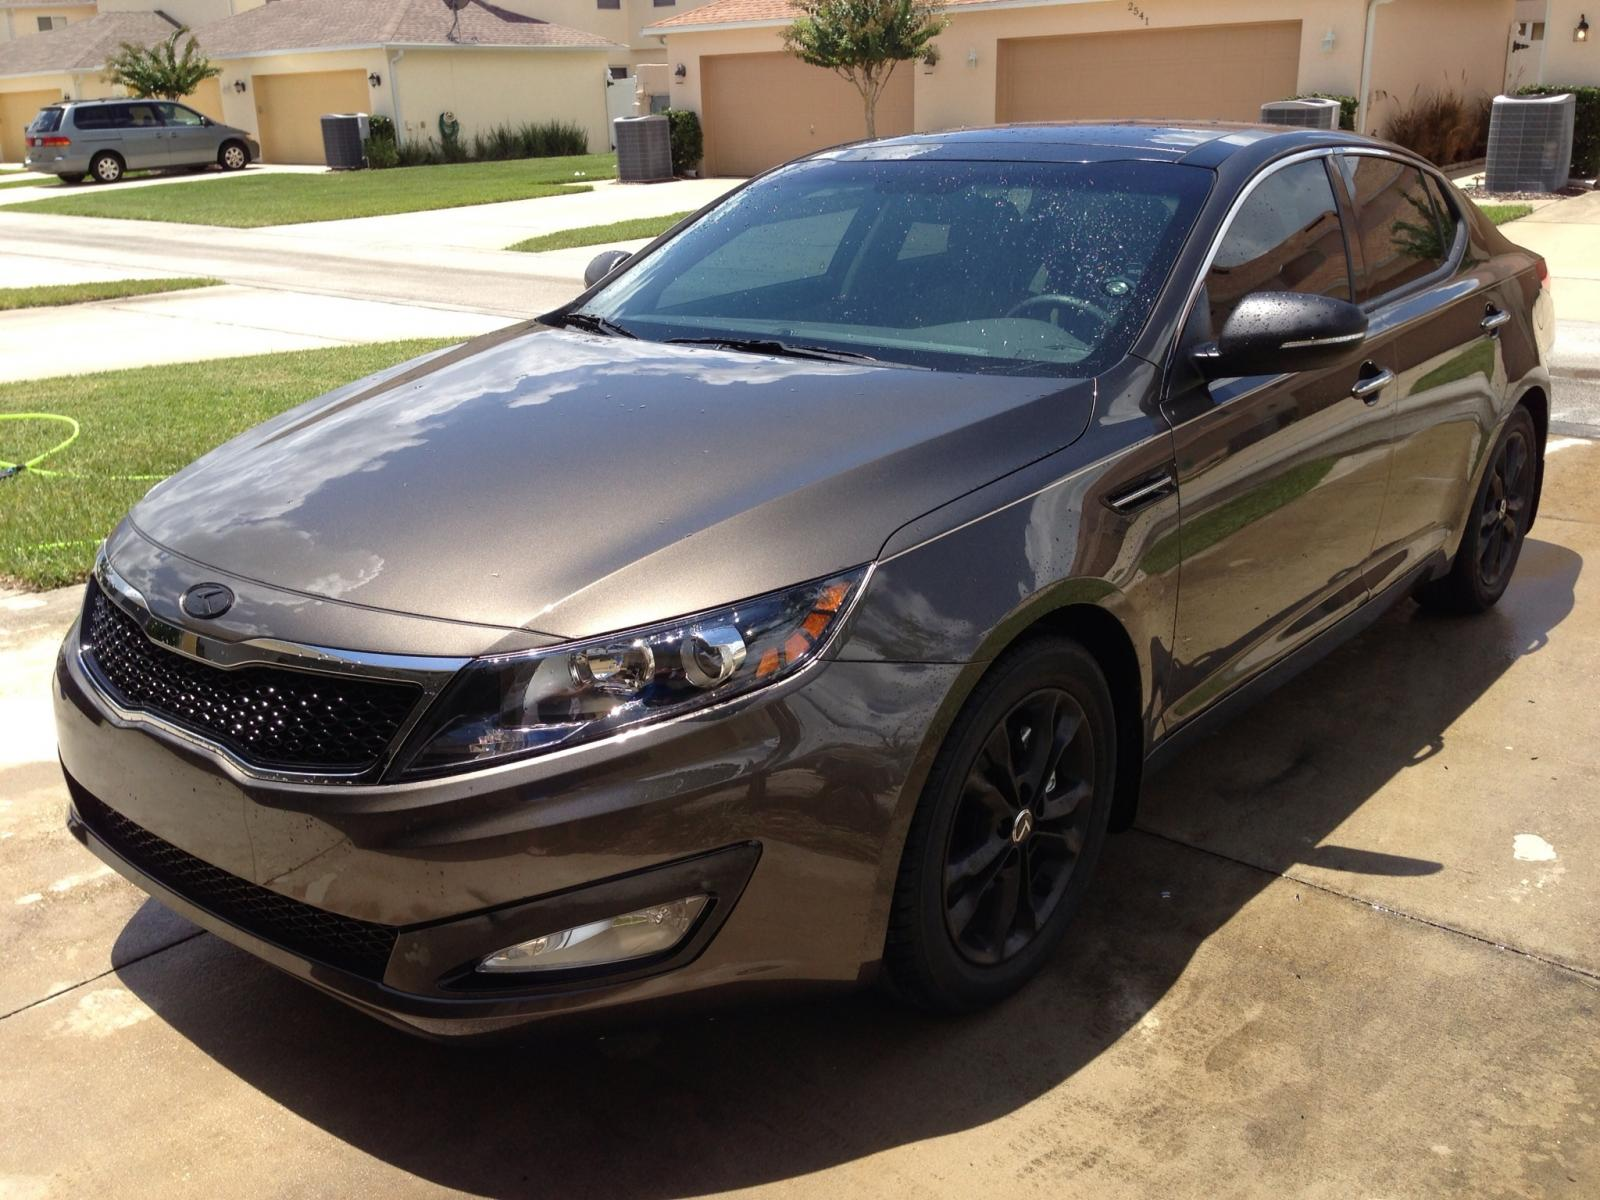 hi everyone new member here just got my 2013 kia optima ex premium. Black Bedroom Furniture Sets. Home Design Ideas